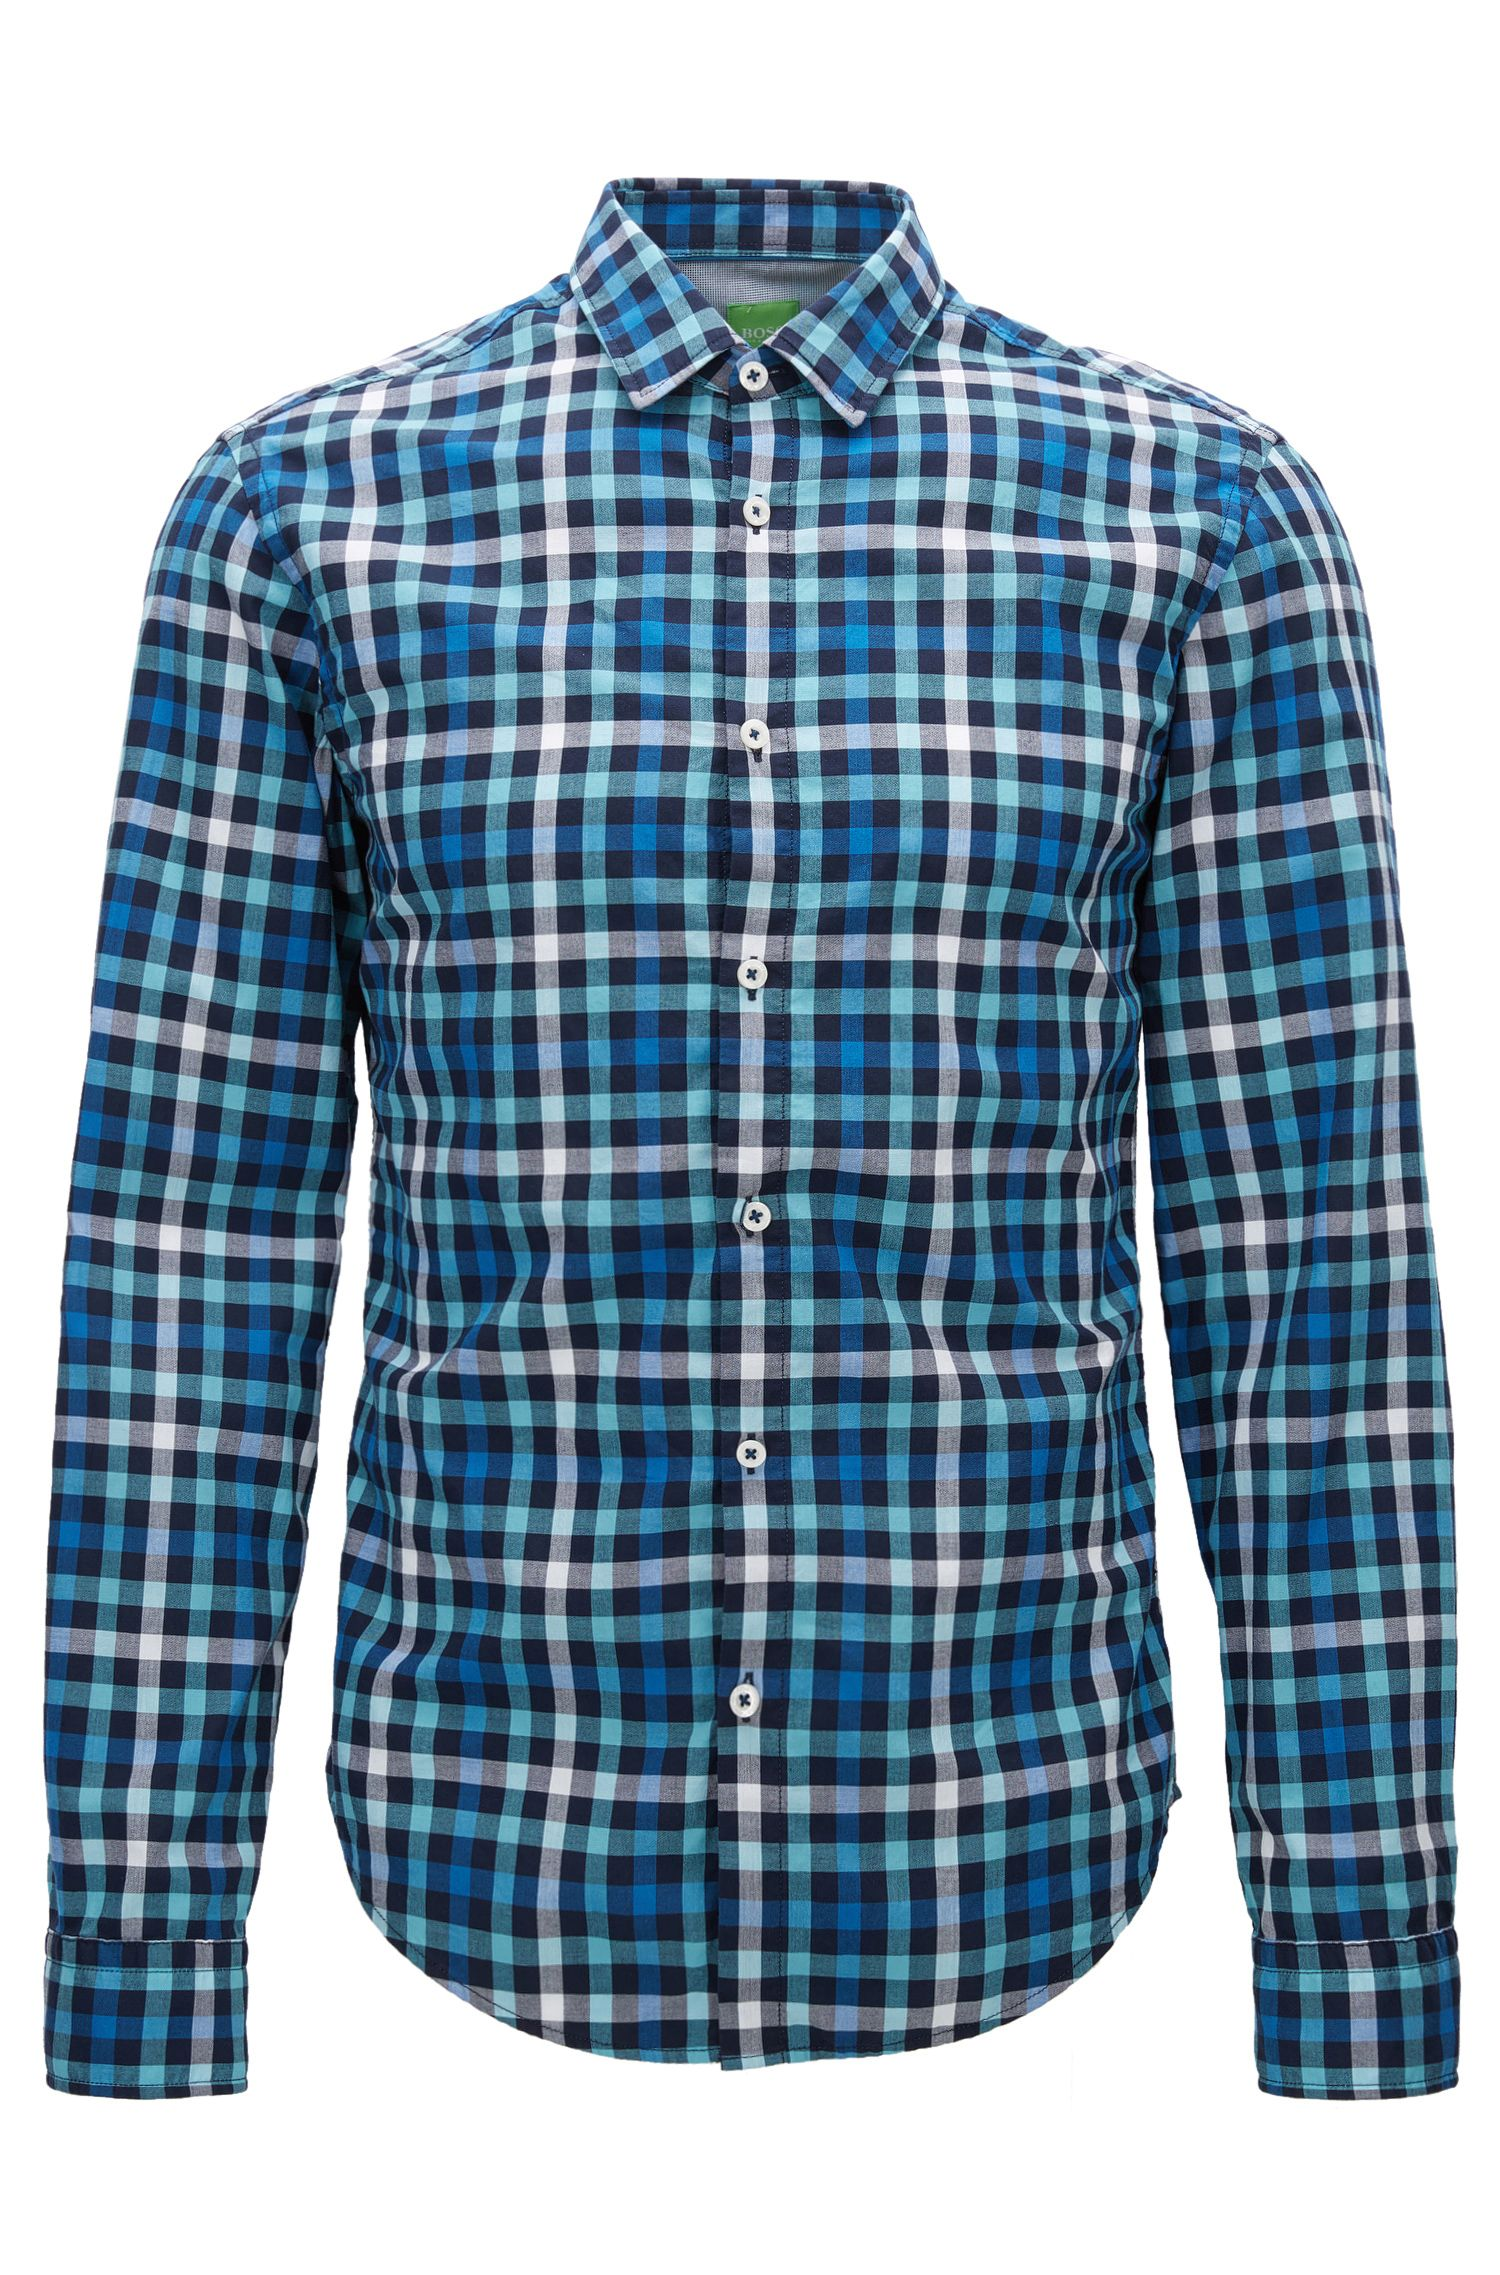 'C-Baldasar S' | Slim Fit, Check Cotton Button Down Shirt